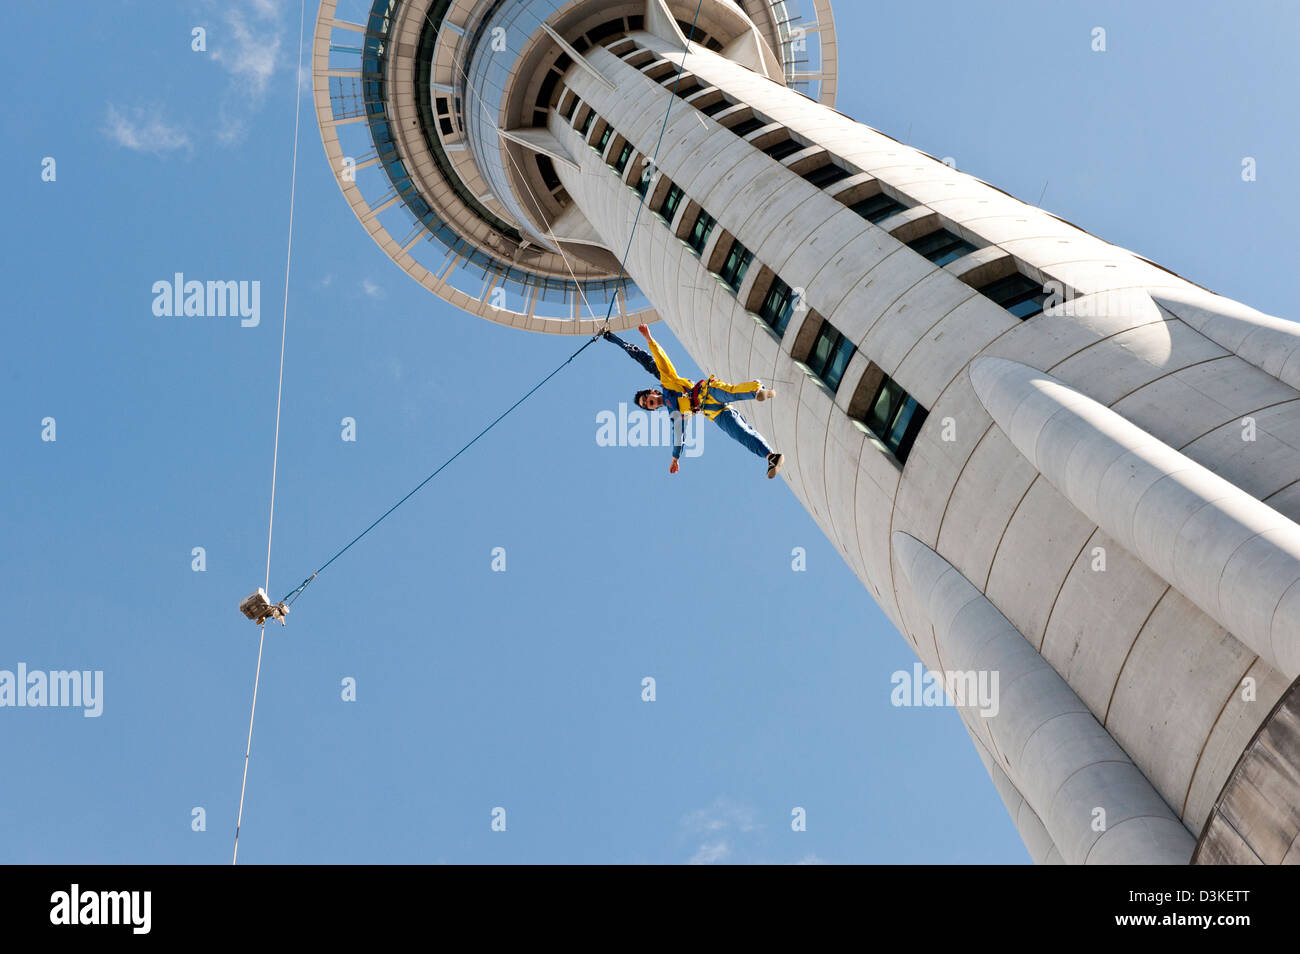 Female base jumping off tower in New Zealand adventure sports sky jump bungy style New Zealand jumper jumping off - Stock Image